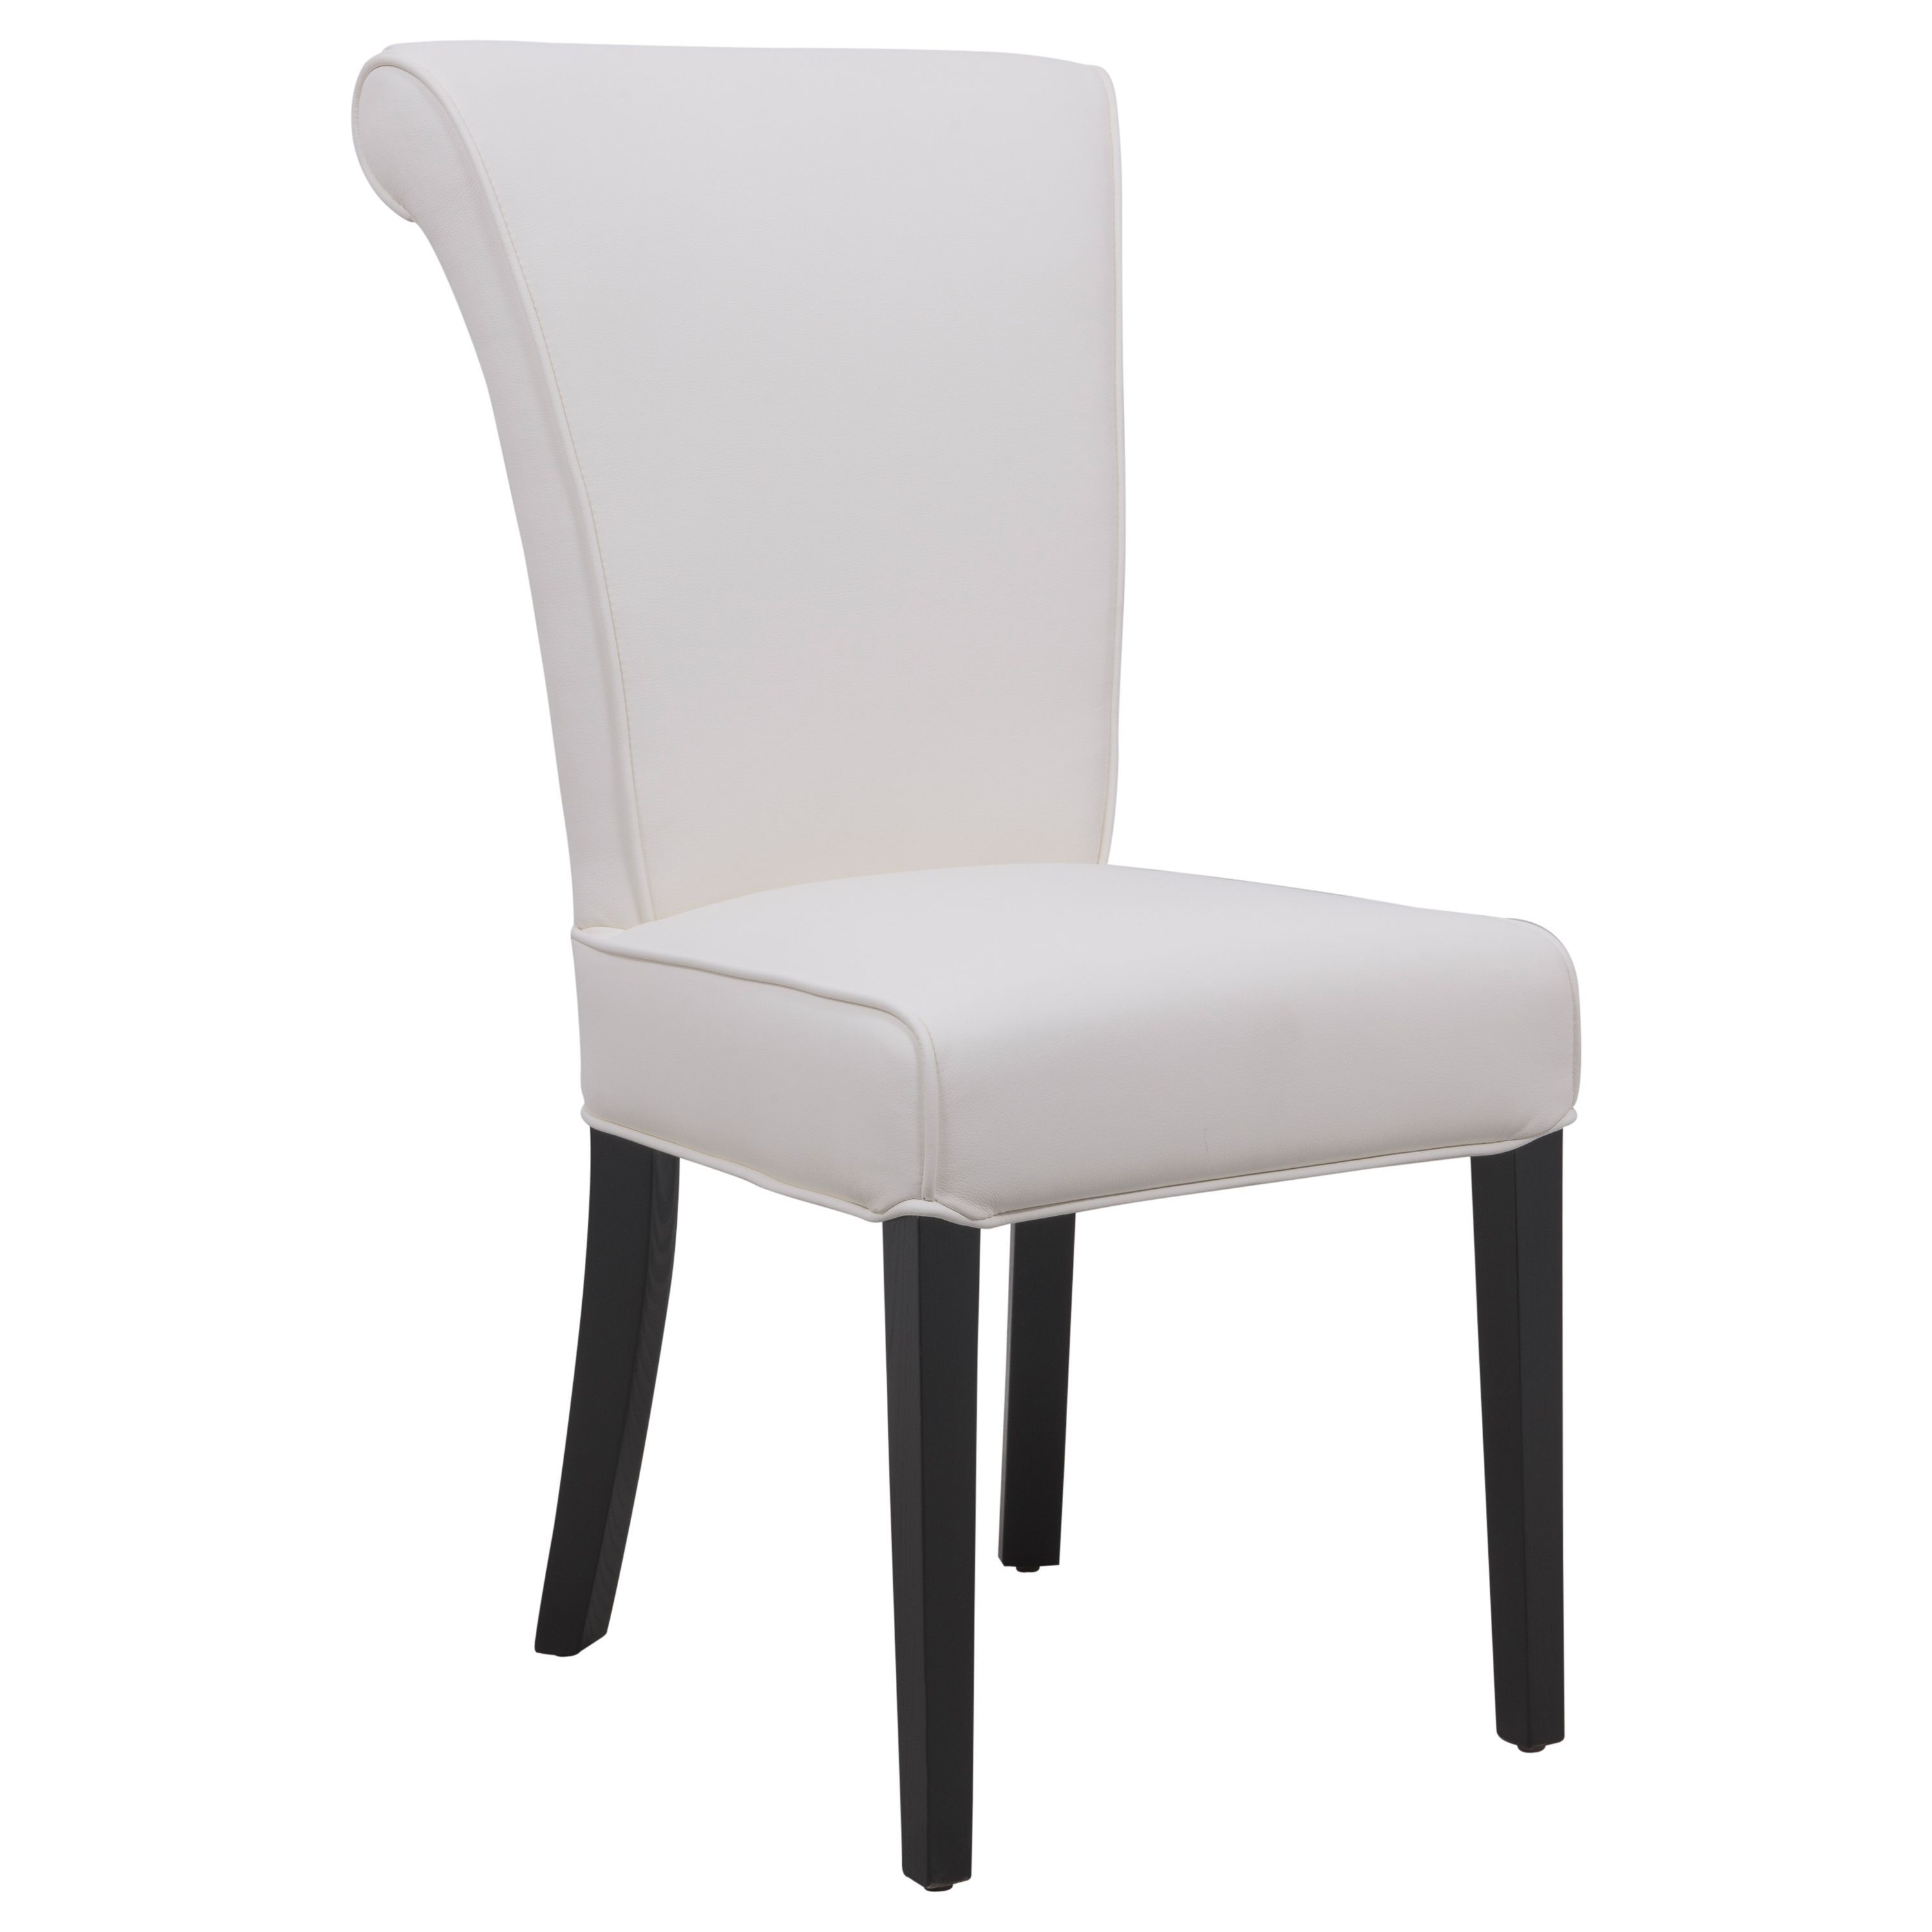 Nesta Z Shaped Modern Diningchair Is Finished In White Faux Leather And Comes With A Circular Ba Leather Dining Chairs Dining Chairs Uk Modern Dining Chairs